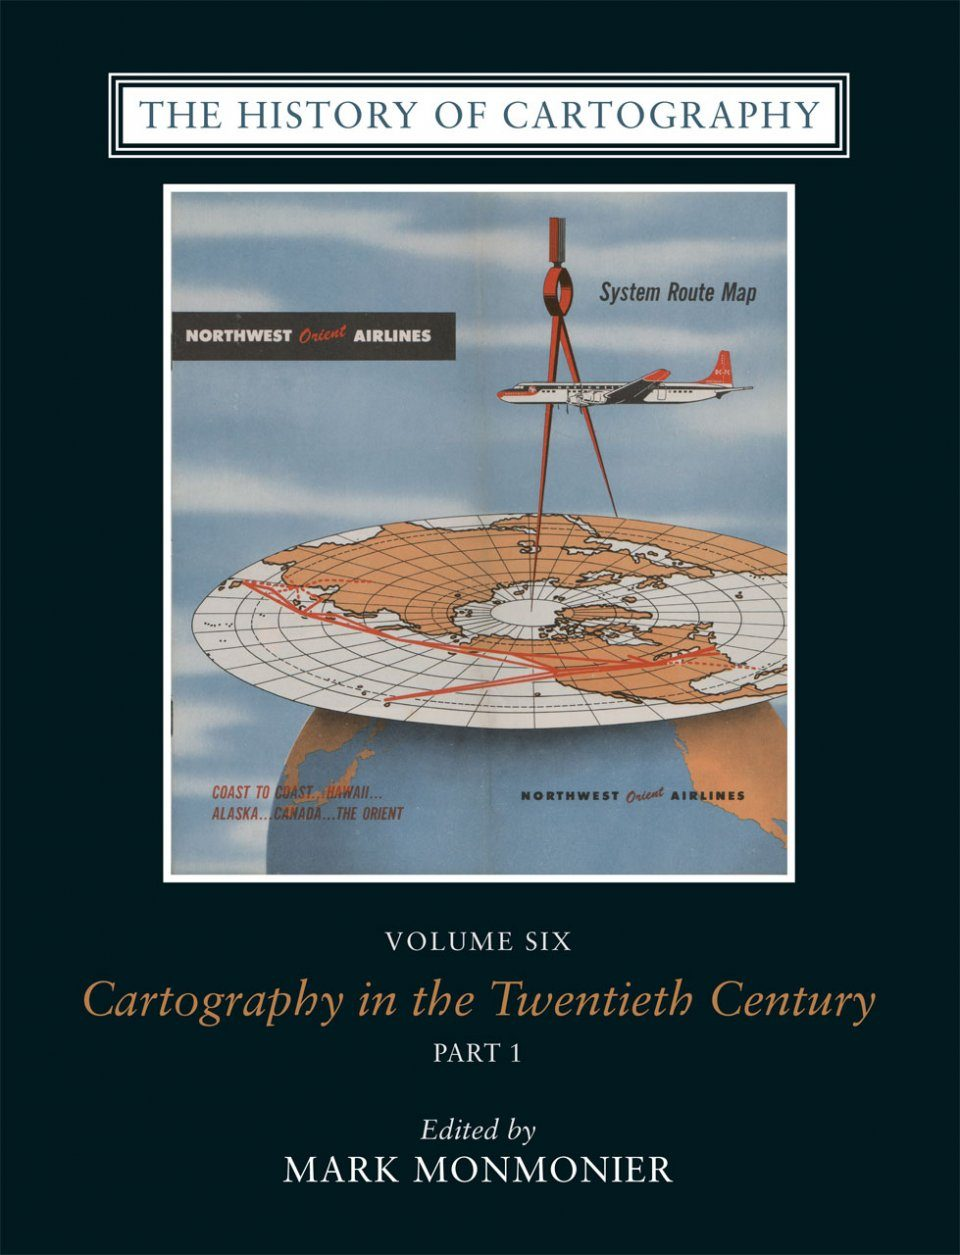 The History of Cartography, Volume 6: Cartography in the Twentieth Century (2-Volume Set)